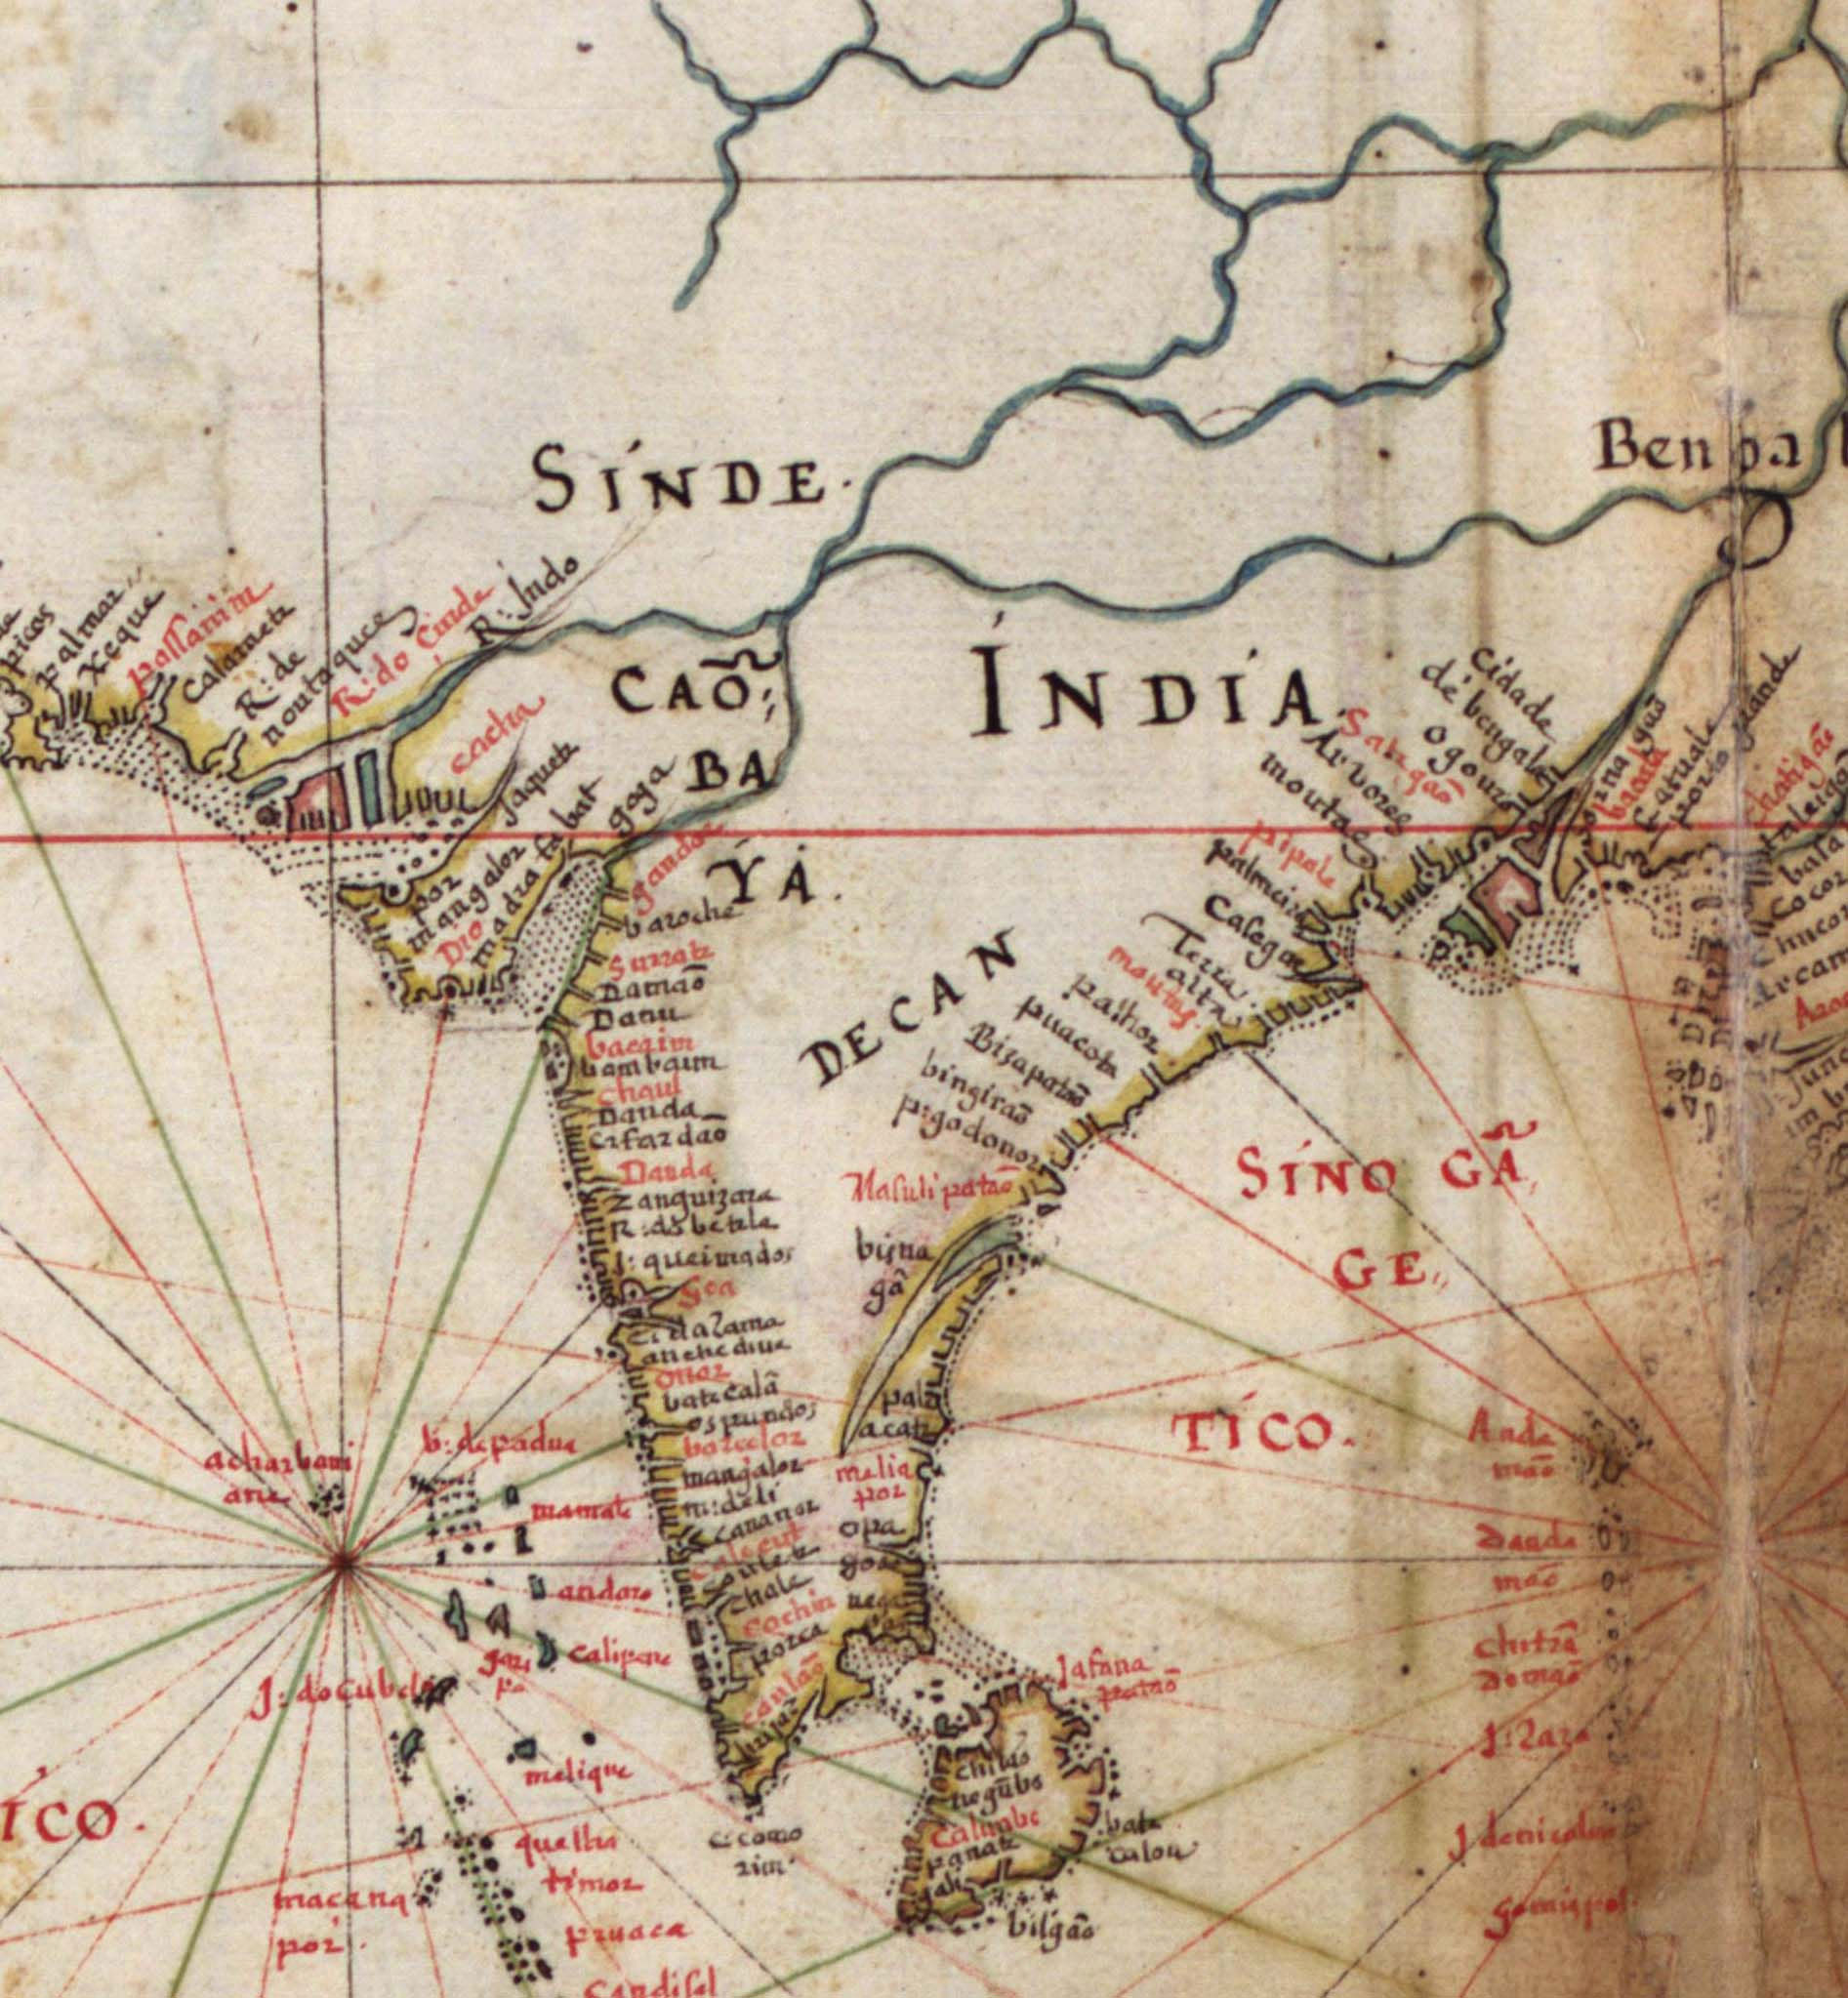 http://upload.wikimedia.org/wikipedia/commons/4/45/Portugues_map_of_India%2C_1630.jpg